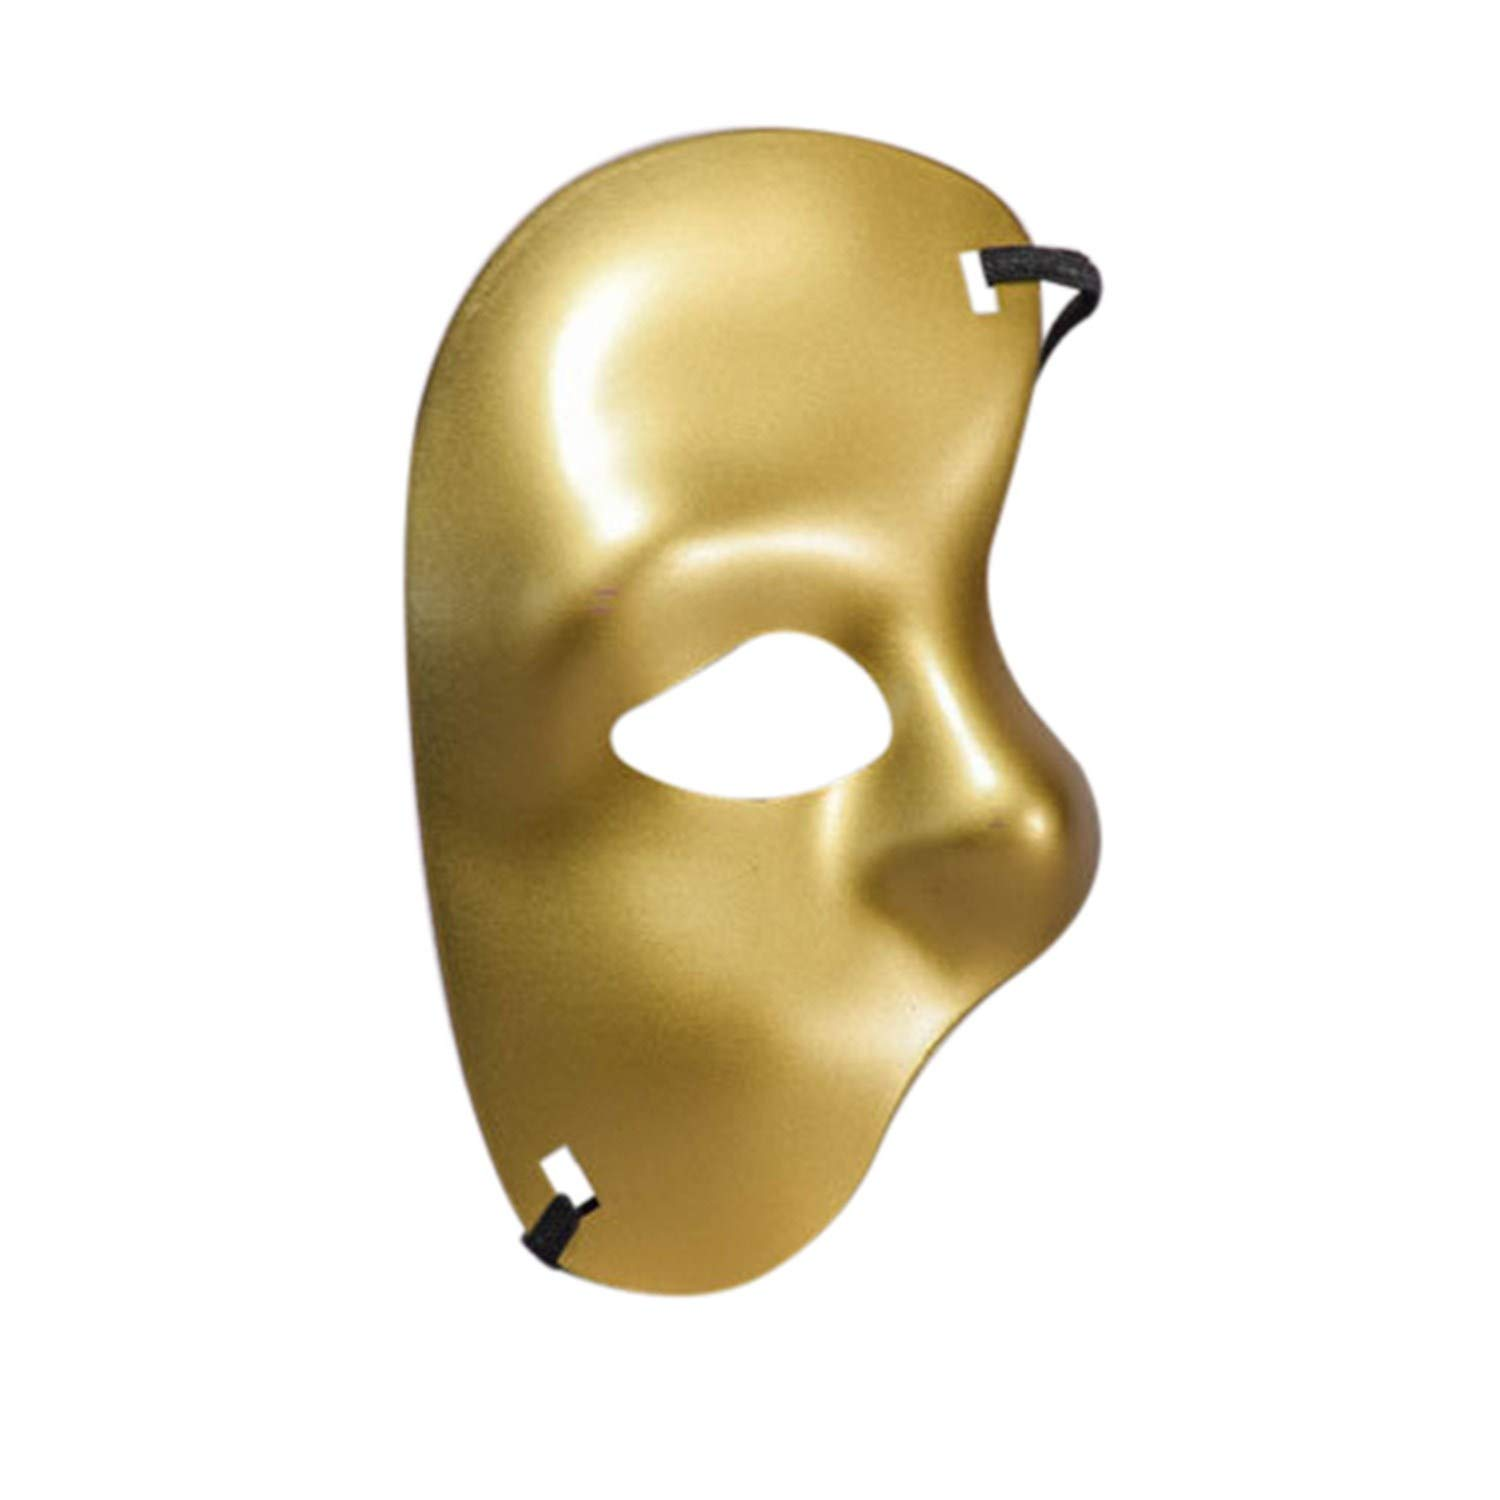 Halloween Mask-Han Shi Masquerade Cutout Half Face Cosplay Prom Party Accessories (Gold, M)